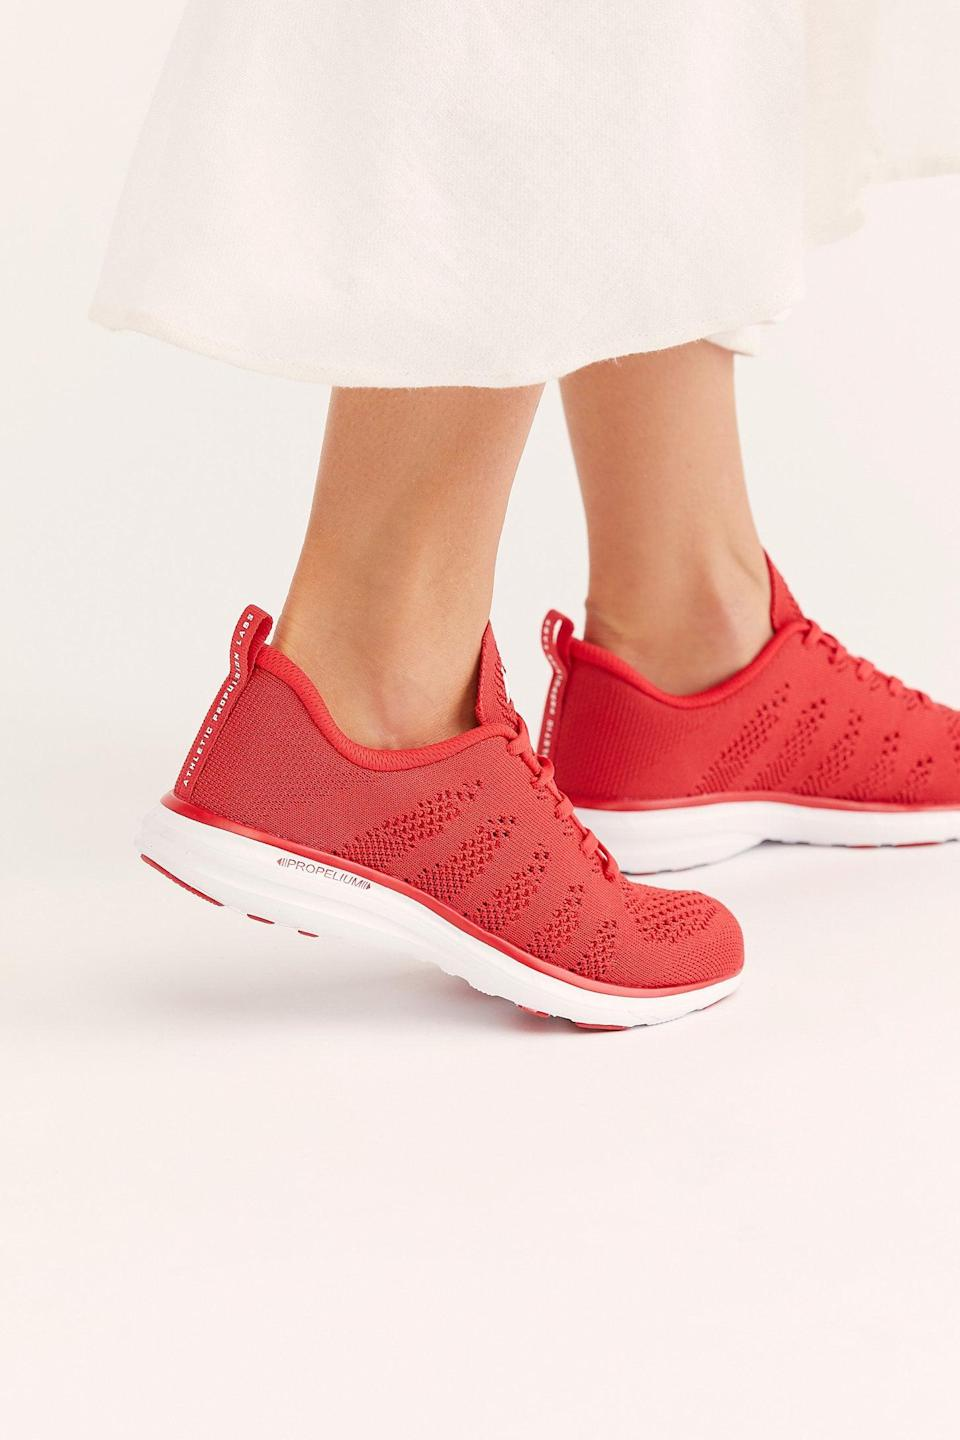 """<p>Get these <a href=""""https://www.popsugar.com/buy/APL-Techloom-Pro-Trainers-527146?p_name=APL%20Techloom%20Pro%20Trainers&retailer=freepeople.com&pid=527146&price=140&evar1=fab%3Aus&evar9=45460327&evar98=https%3A%2F%2Fwww.popsugar.com%2Ffashion%2Fphoto-gallery%2F45460327%2Fimage%2F46977996%2FAPL-Techloom-Pro-Trainers&list1=shopping%2Cgifts%2Cfree%20people%2Choliday%2Cgift%20guide%2Cgifts%20for%20women&prop13=api&pdata=1"""" class=""""link rapid-noclick-resp"""" rel=""""nofollow noopener"""" target=""""_blank"""" data-ylk=""""slk:APL Techloom Pro Trainers"""">APL Techloom Pro Trainers</a> ($140) for the runner in your life.</p>"""